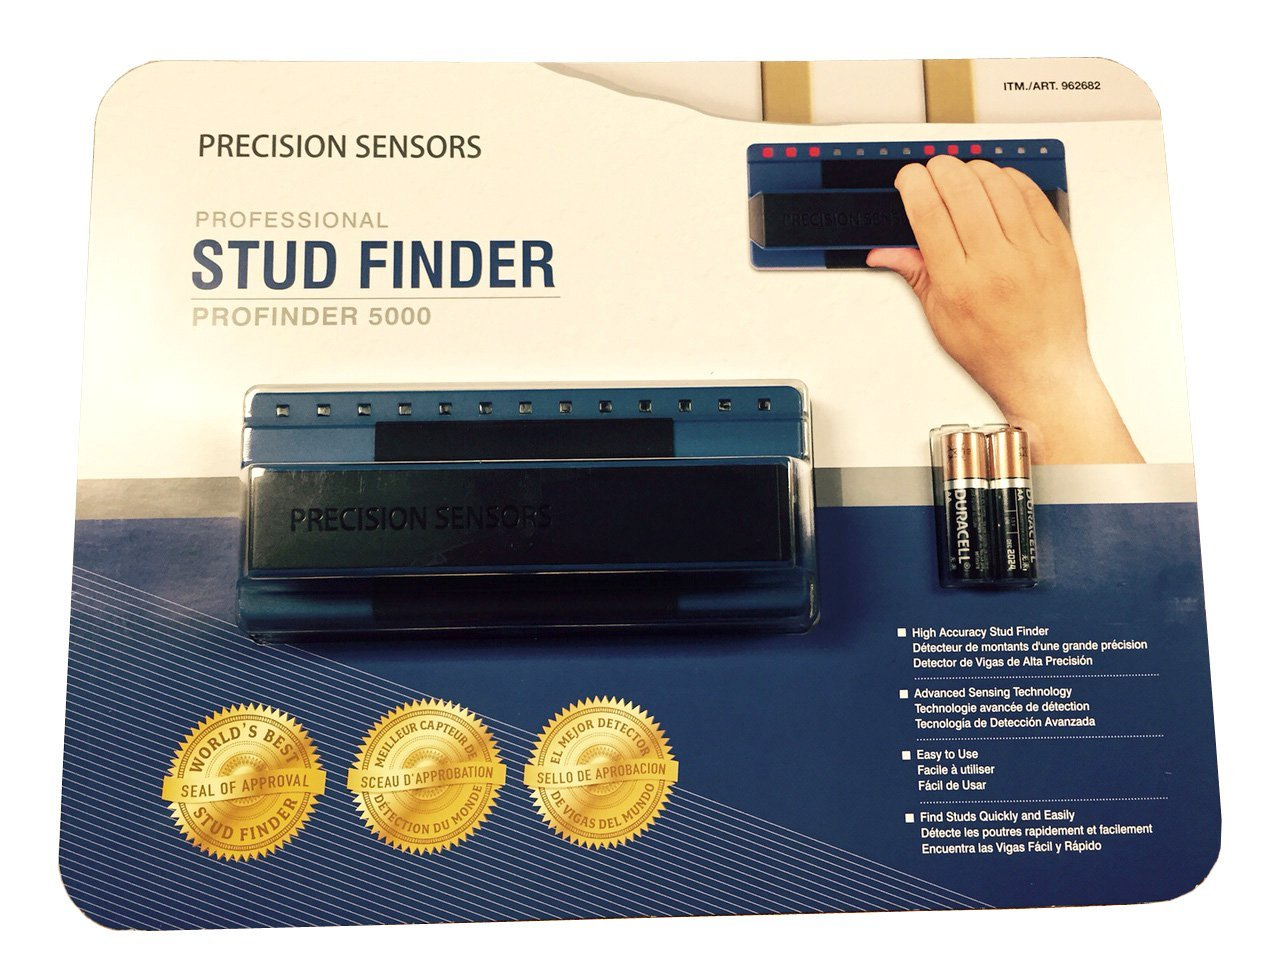 Precision Sensors Pro 5000 Stud Finder